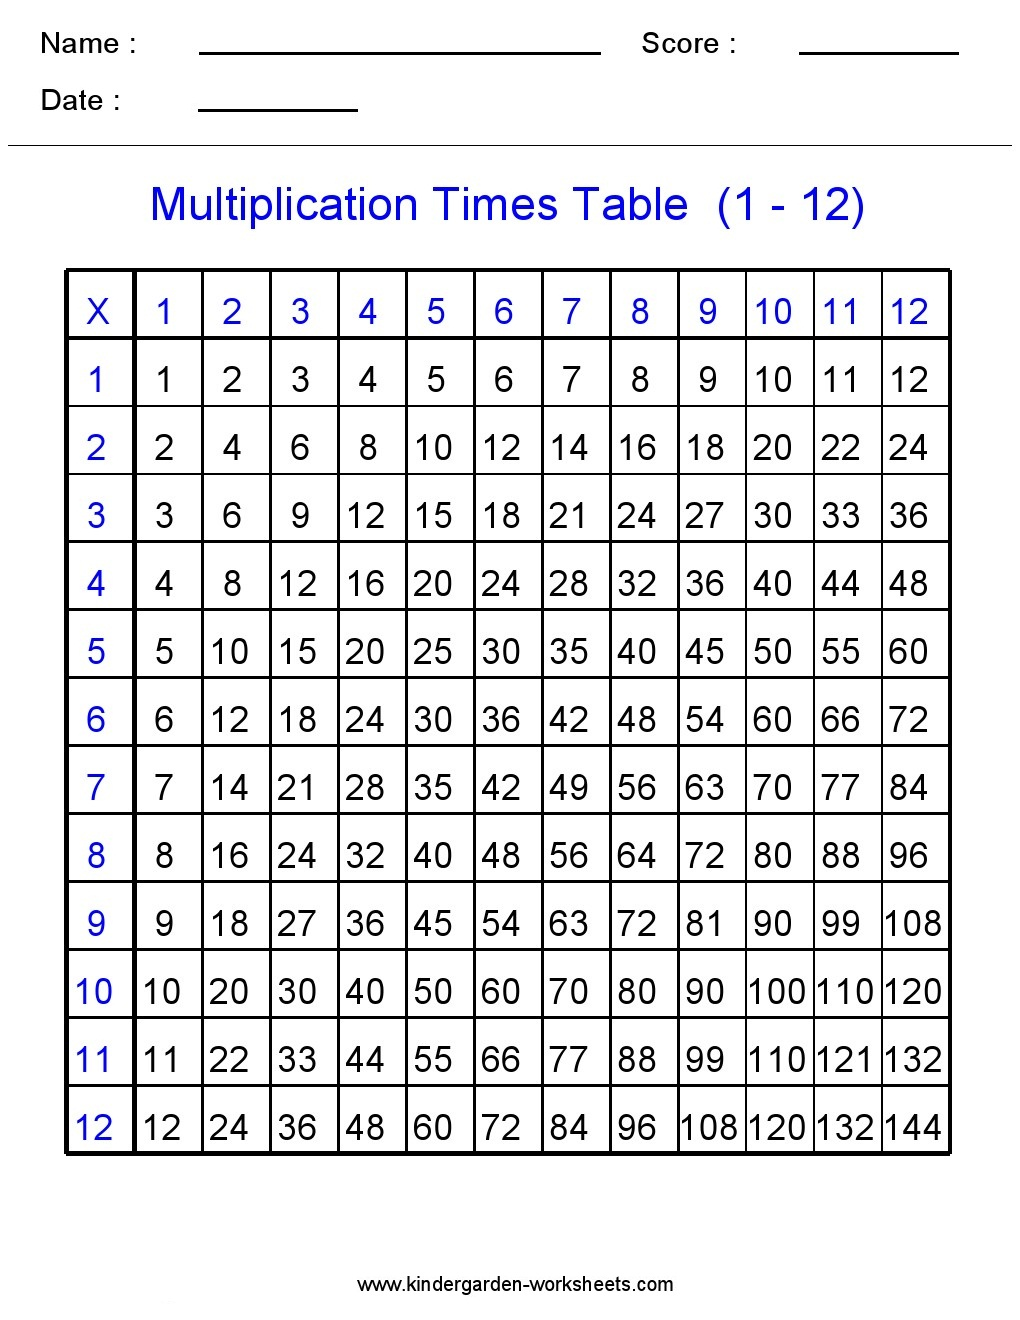 worksheet 3rd Grade Multiplication Table kindergarten worksheets maths multiplication these times tables are appropriate for 1st grade 2nd 3rd 4th and 5th grade